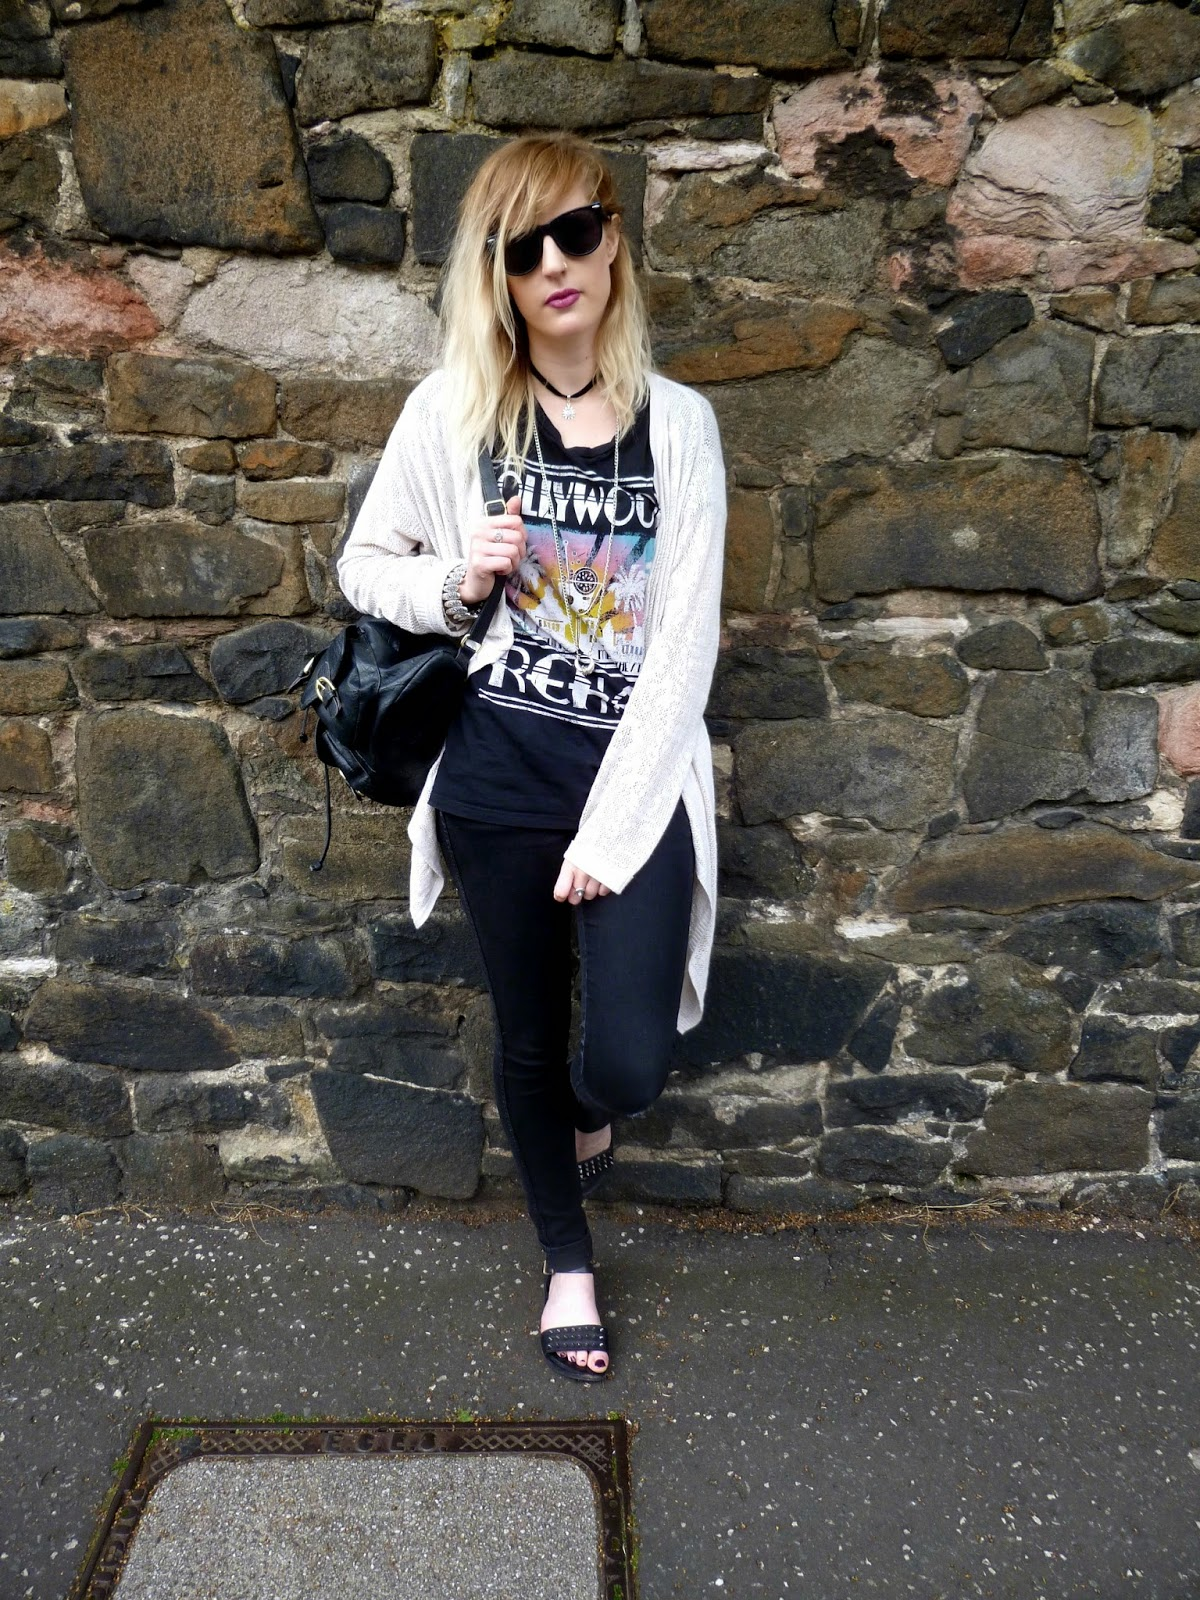 Edinburgh street style, a casual vintage outfit